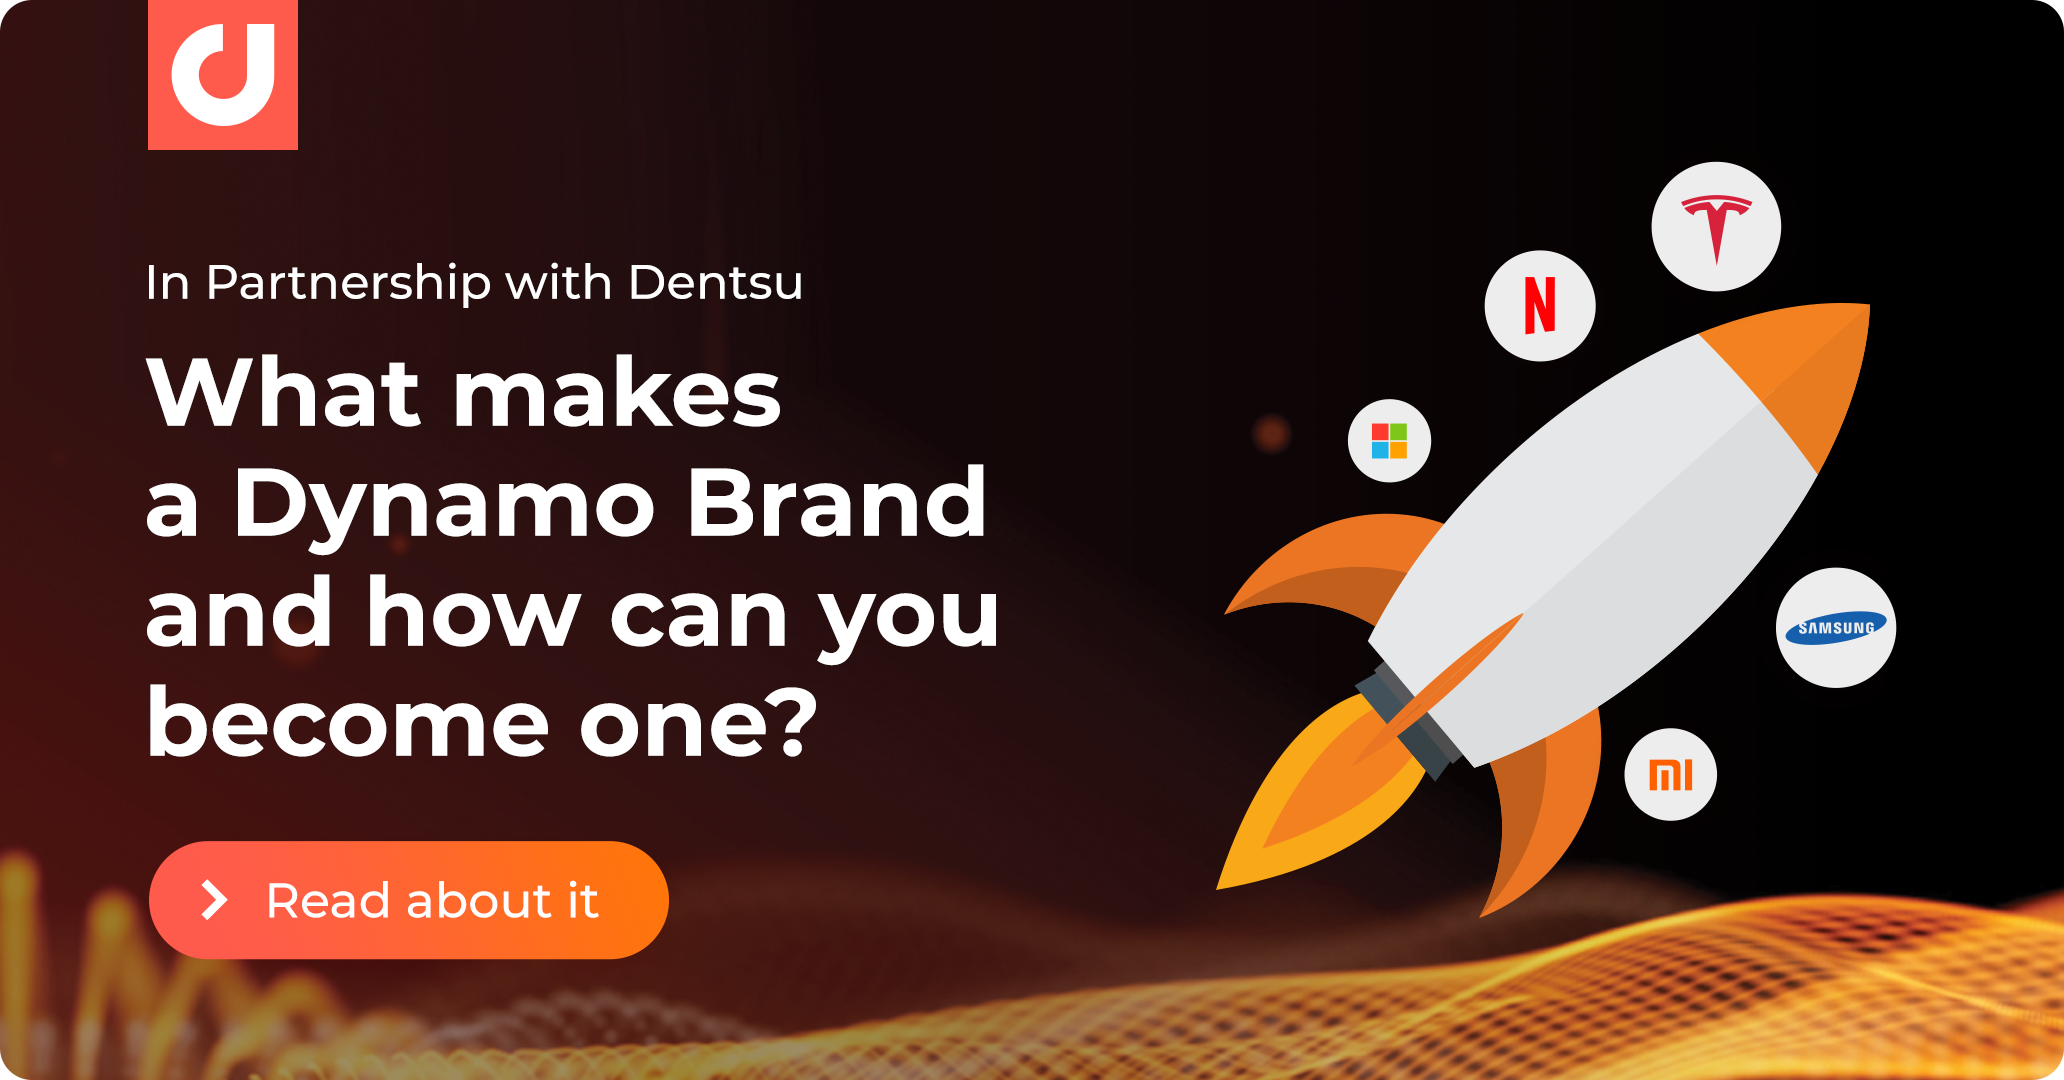 Download the Dynamo Brand Index, created in partnership with Dentsu